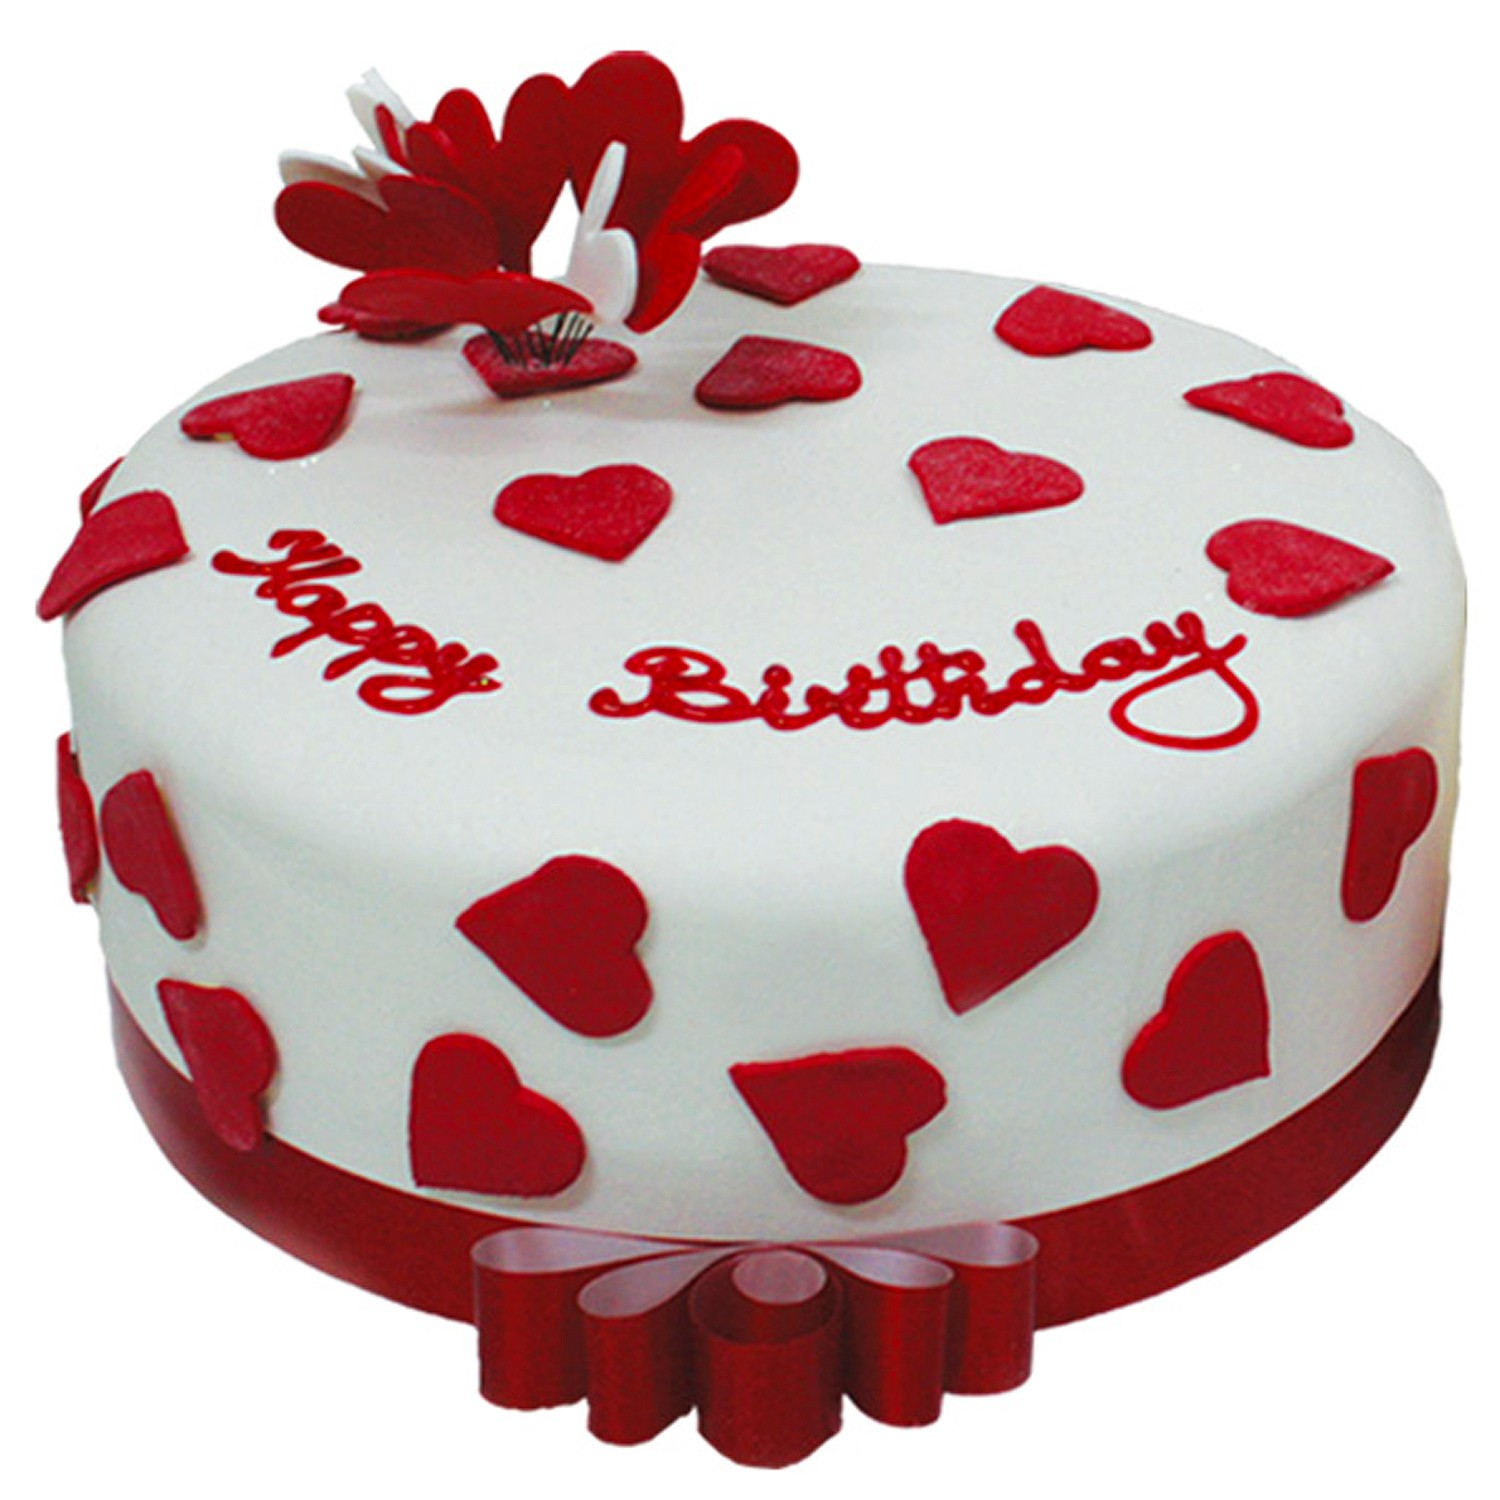 image - heart-birthday-cake-on-valentine-day | whatever you, Ideas